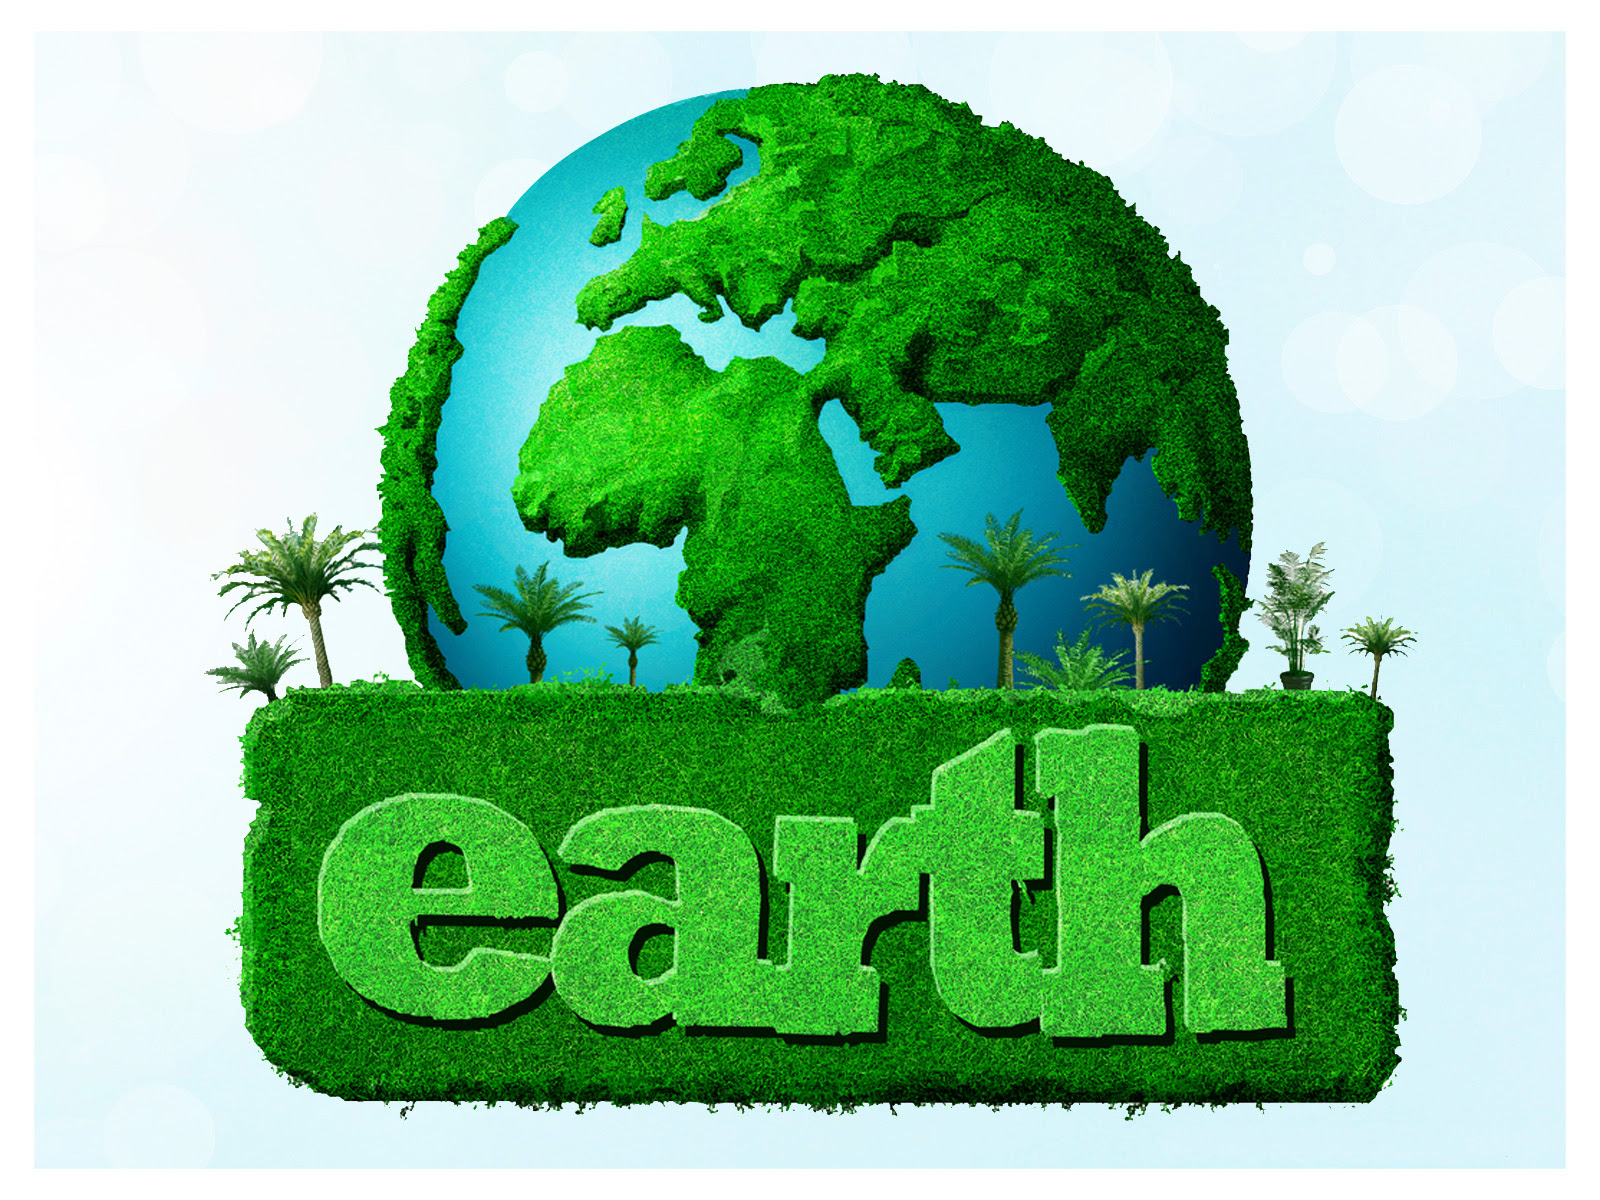 http://www.ctkcathedralschool.org/wp-content/uploads/2017/02/Earth-Day.jpg